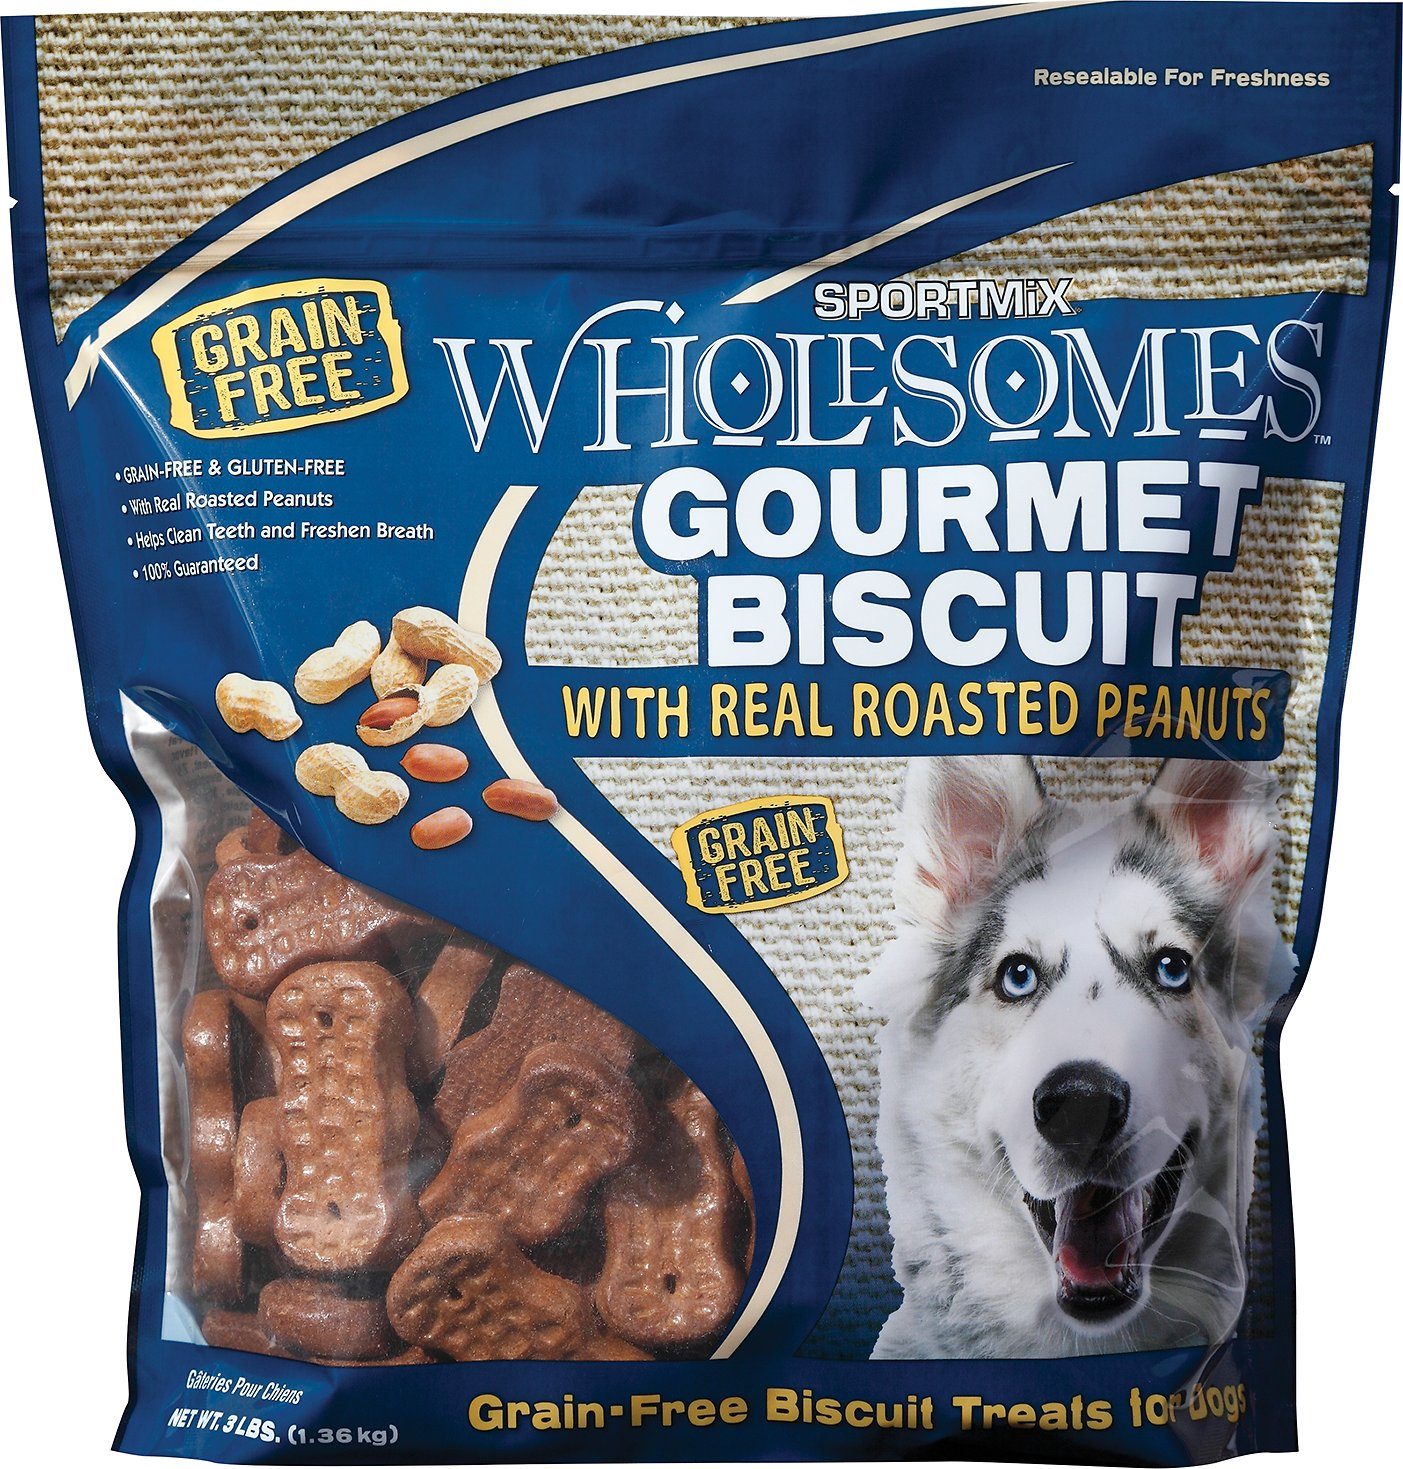 SPORTMiX Wholesomes Grain-Free Premium Gourmet Biscuit with Roasted Peanuts Dog Treats, 3-lb bag (Size: 3-lb bag) Image